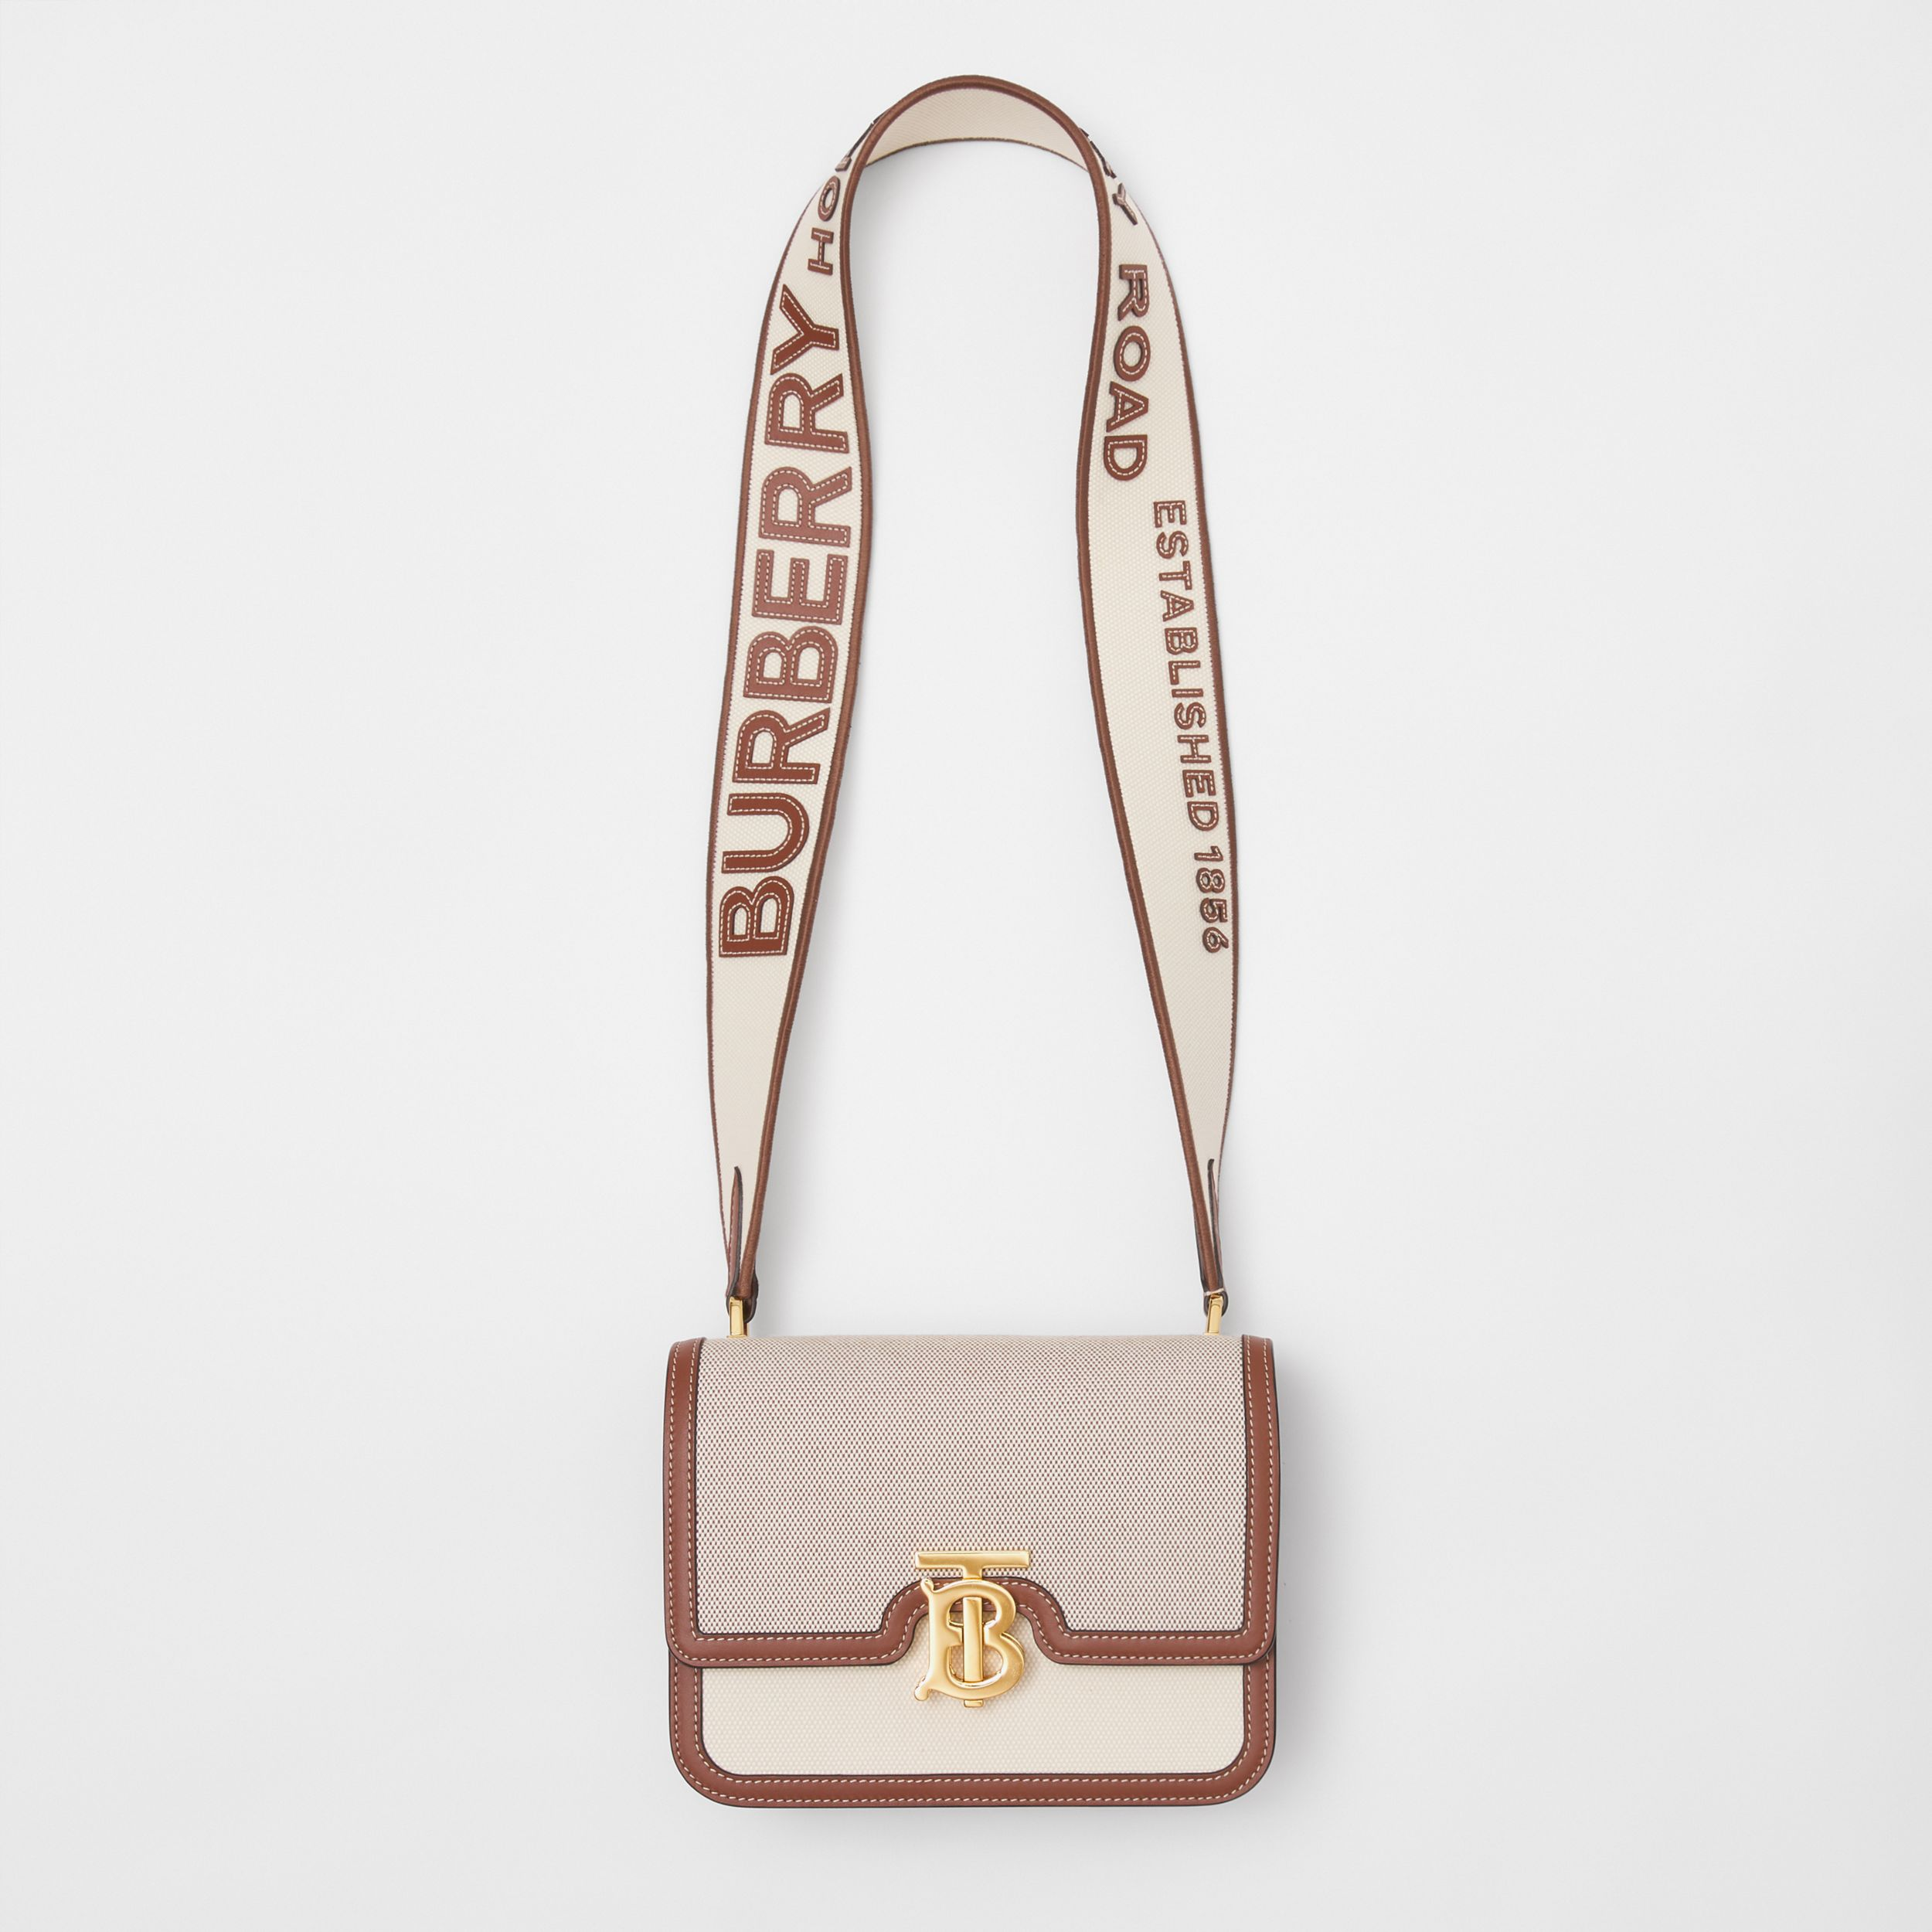 Small Cotton Canvas and Leather TB Bag in Soft Fawn/ecru - Women | Burberry Singapore - 4